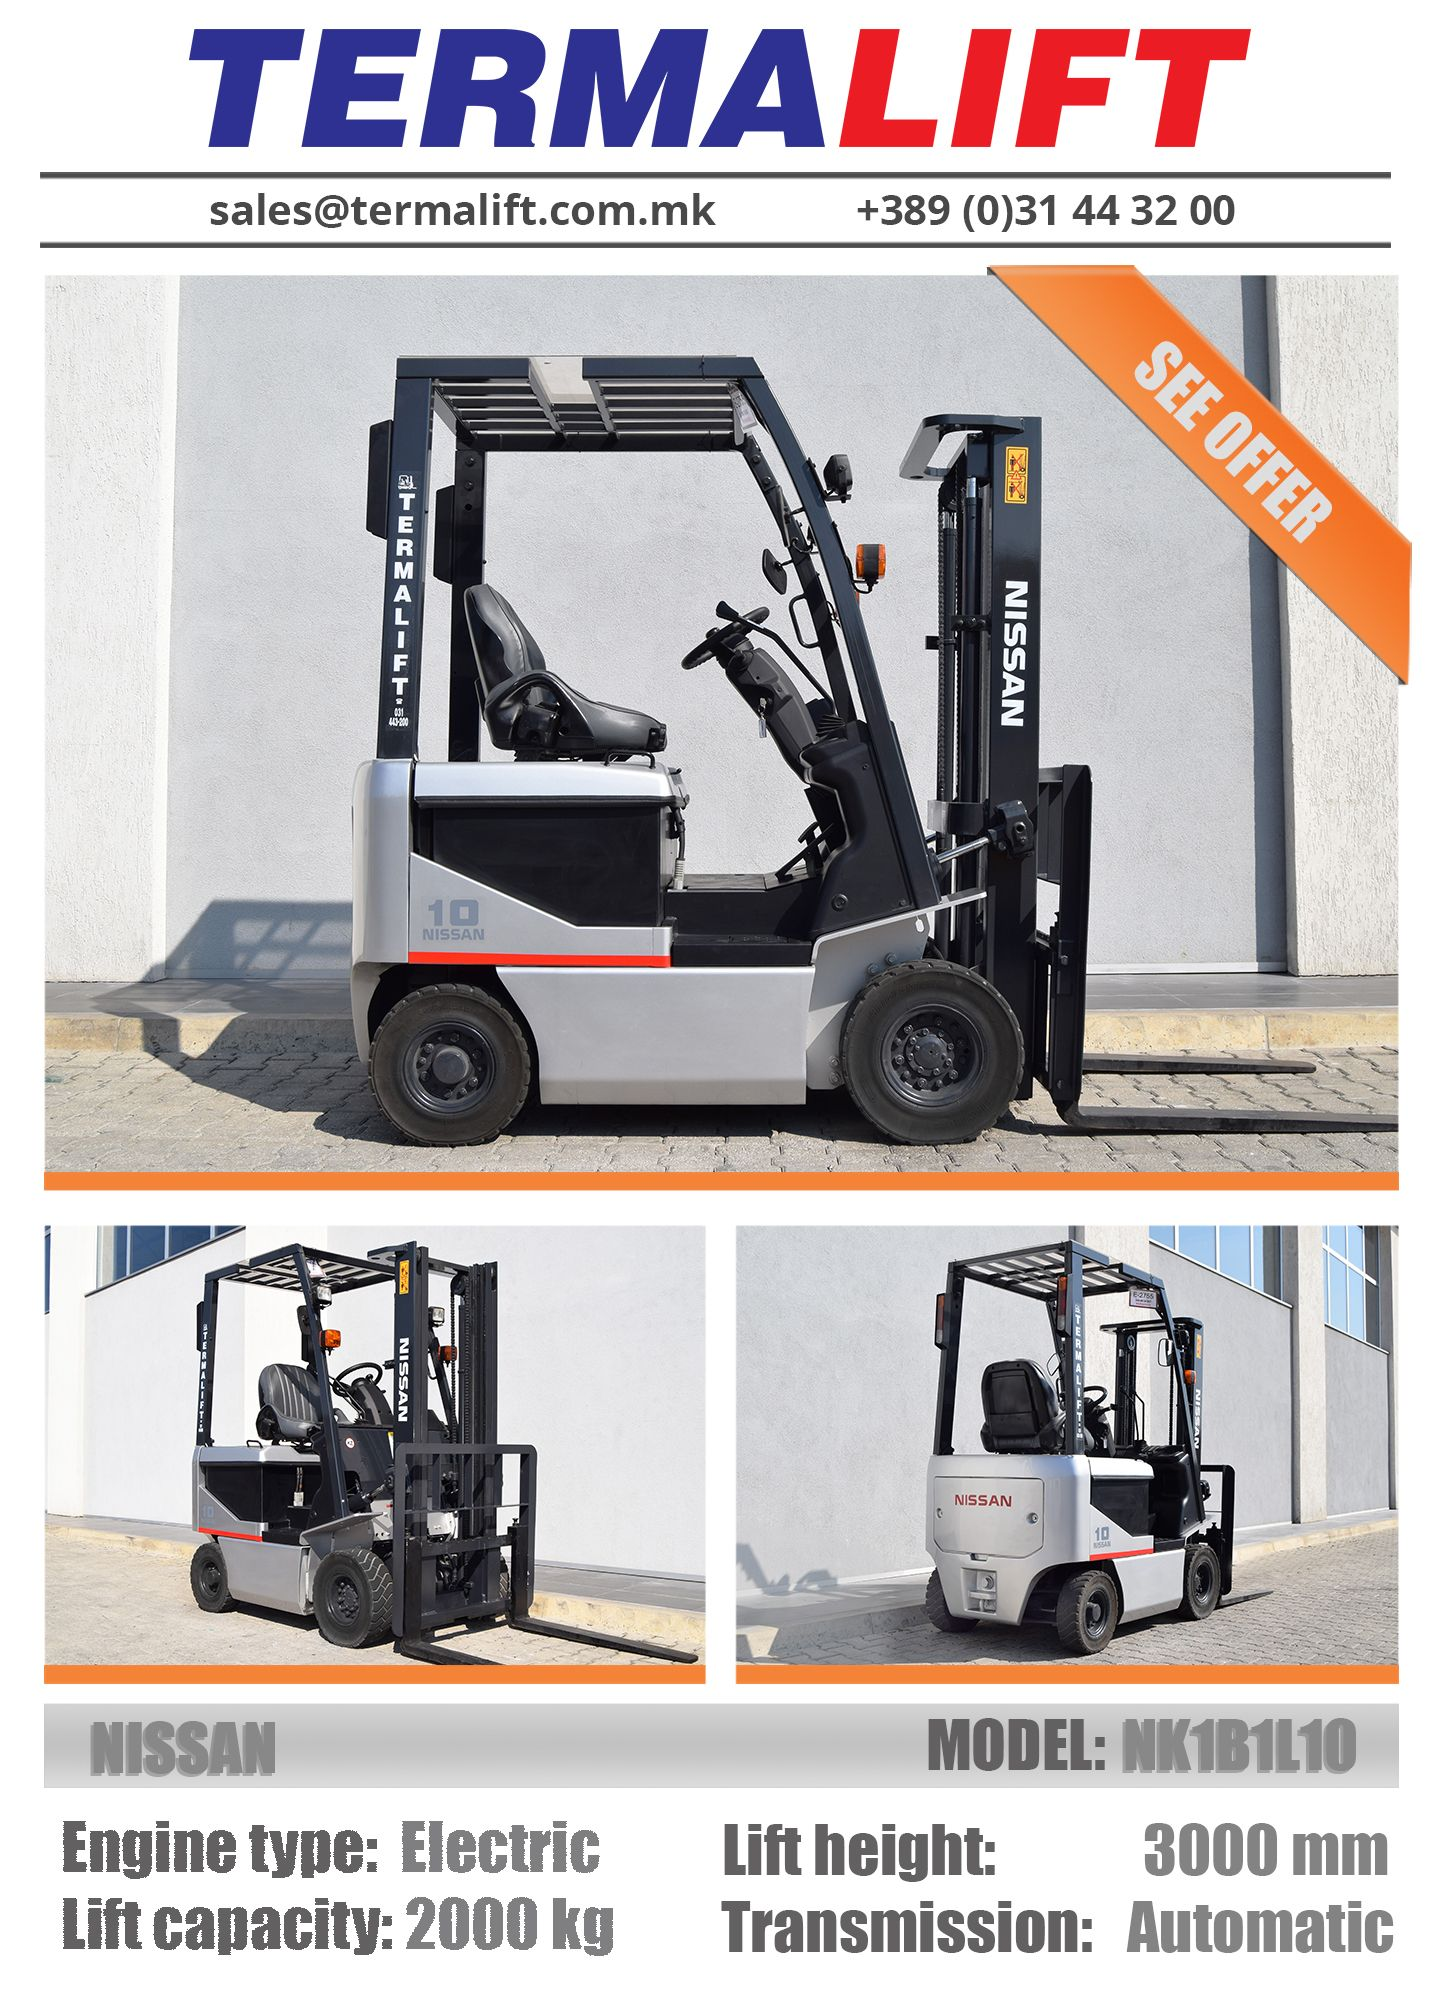 NISSAN | Forklift For Sale | Model: NK1B1L10 | Engine type